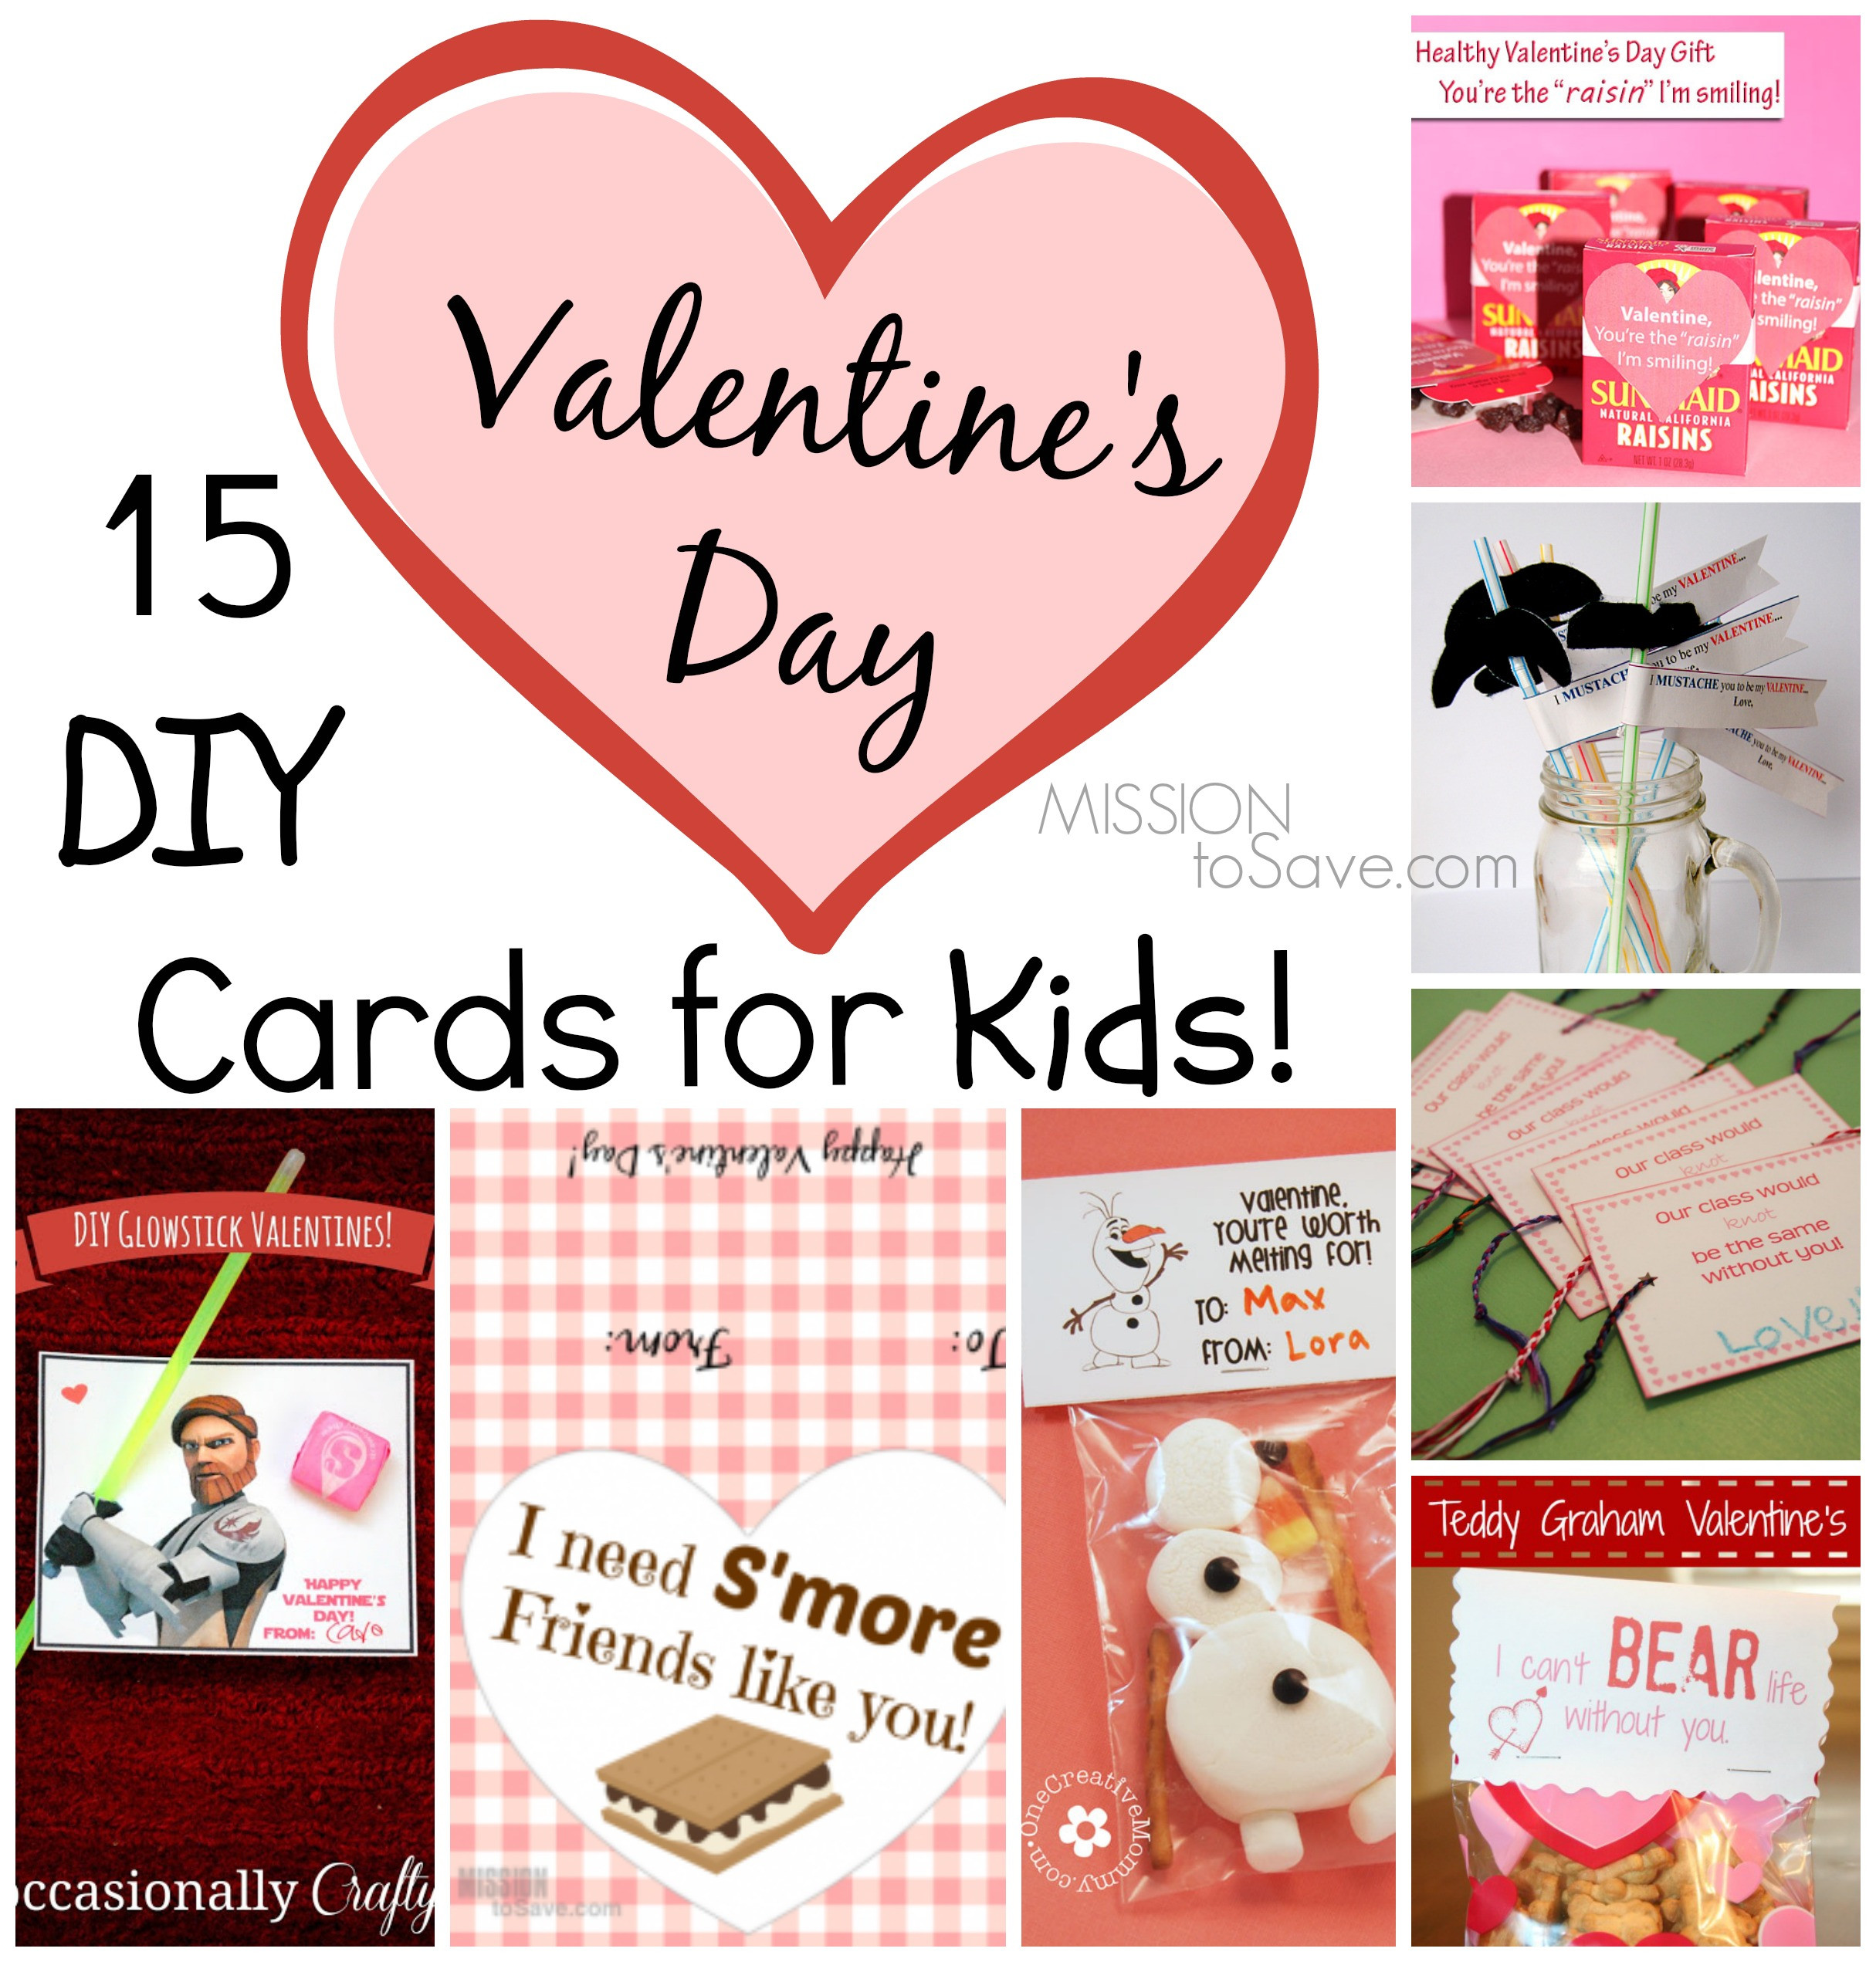 Best ideas about DIY Kids Valentine Cards . Save or Pin 15 DIY Valentine Day Cards for Kids Mission to Save Now.